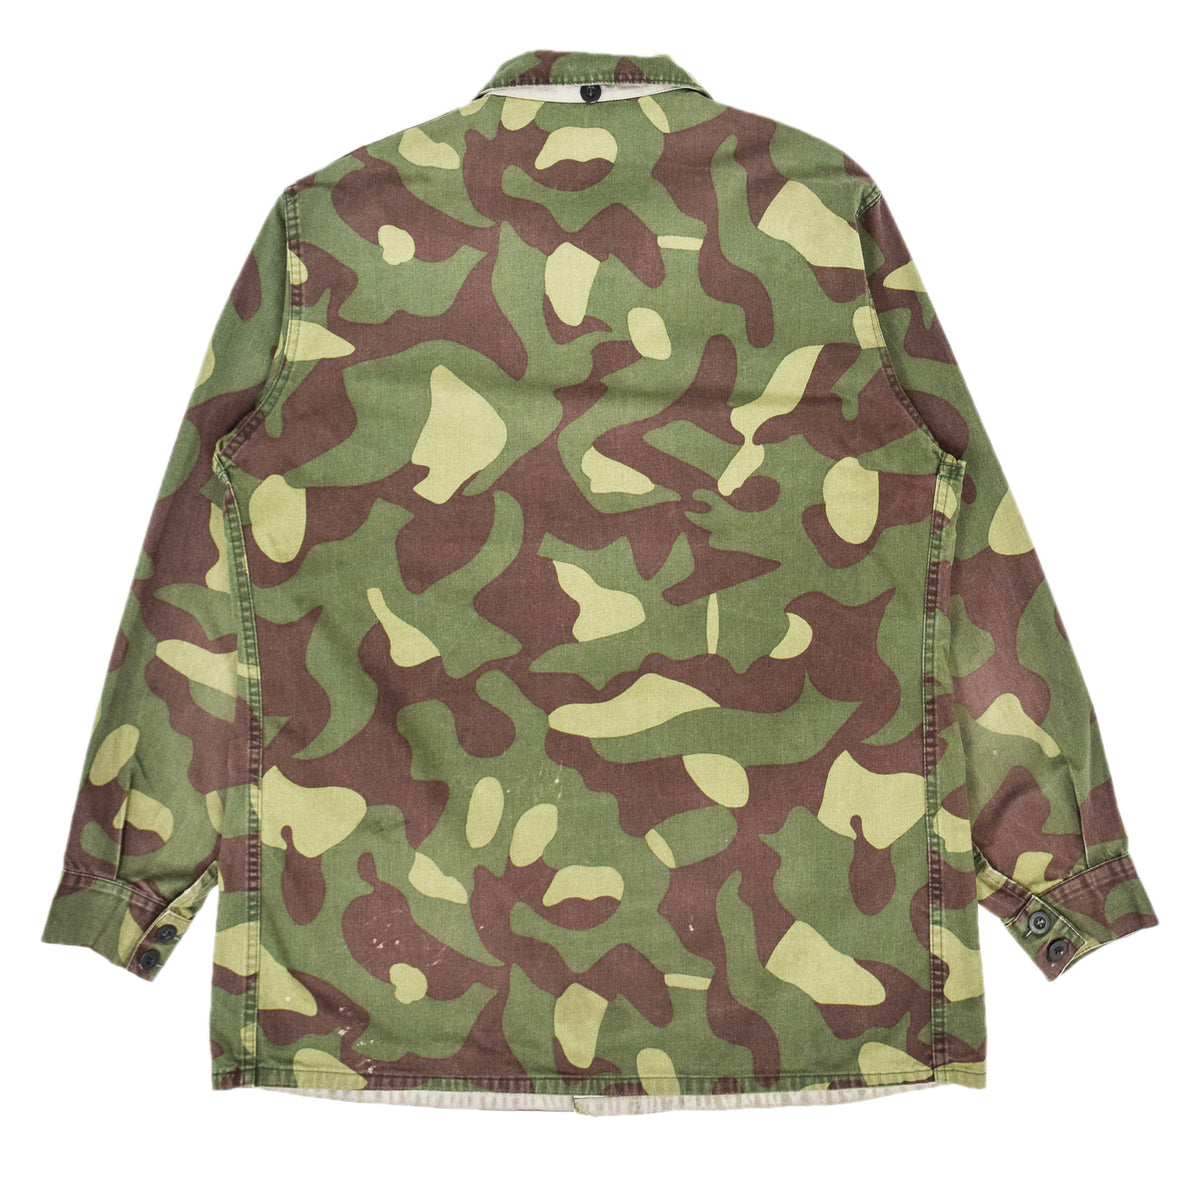 Vintage 80s Military Finnish Army Green Camo Mountain Field Jacket L / XL BACK